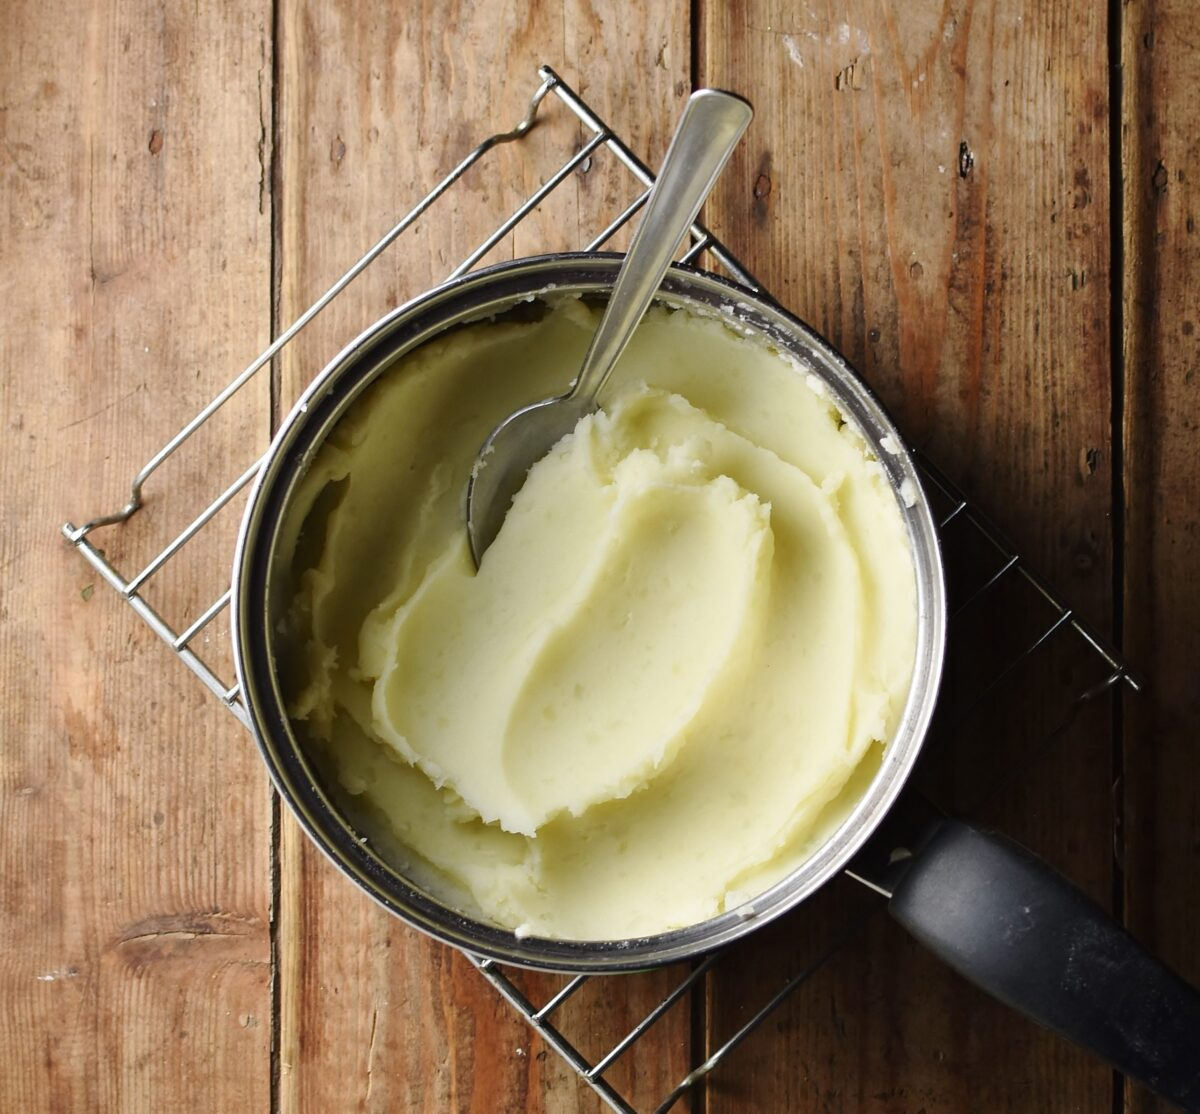 Mashed potatoes with spoon in pot.